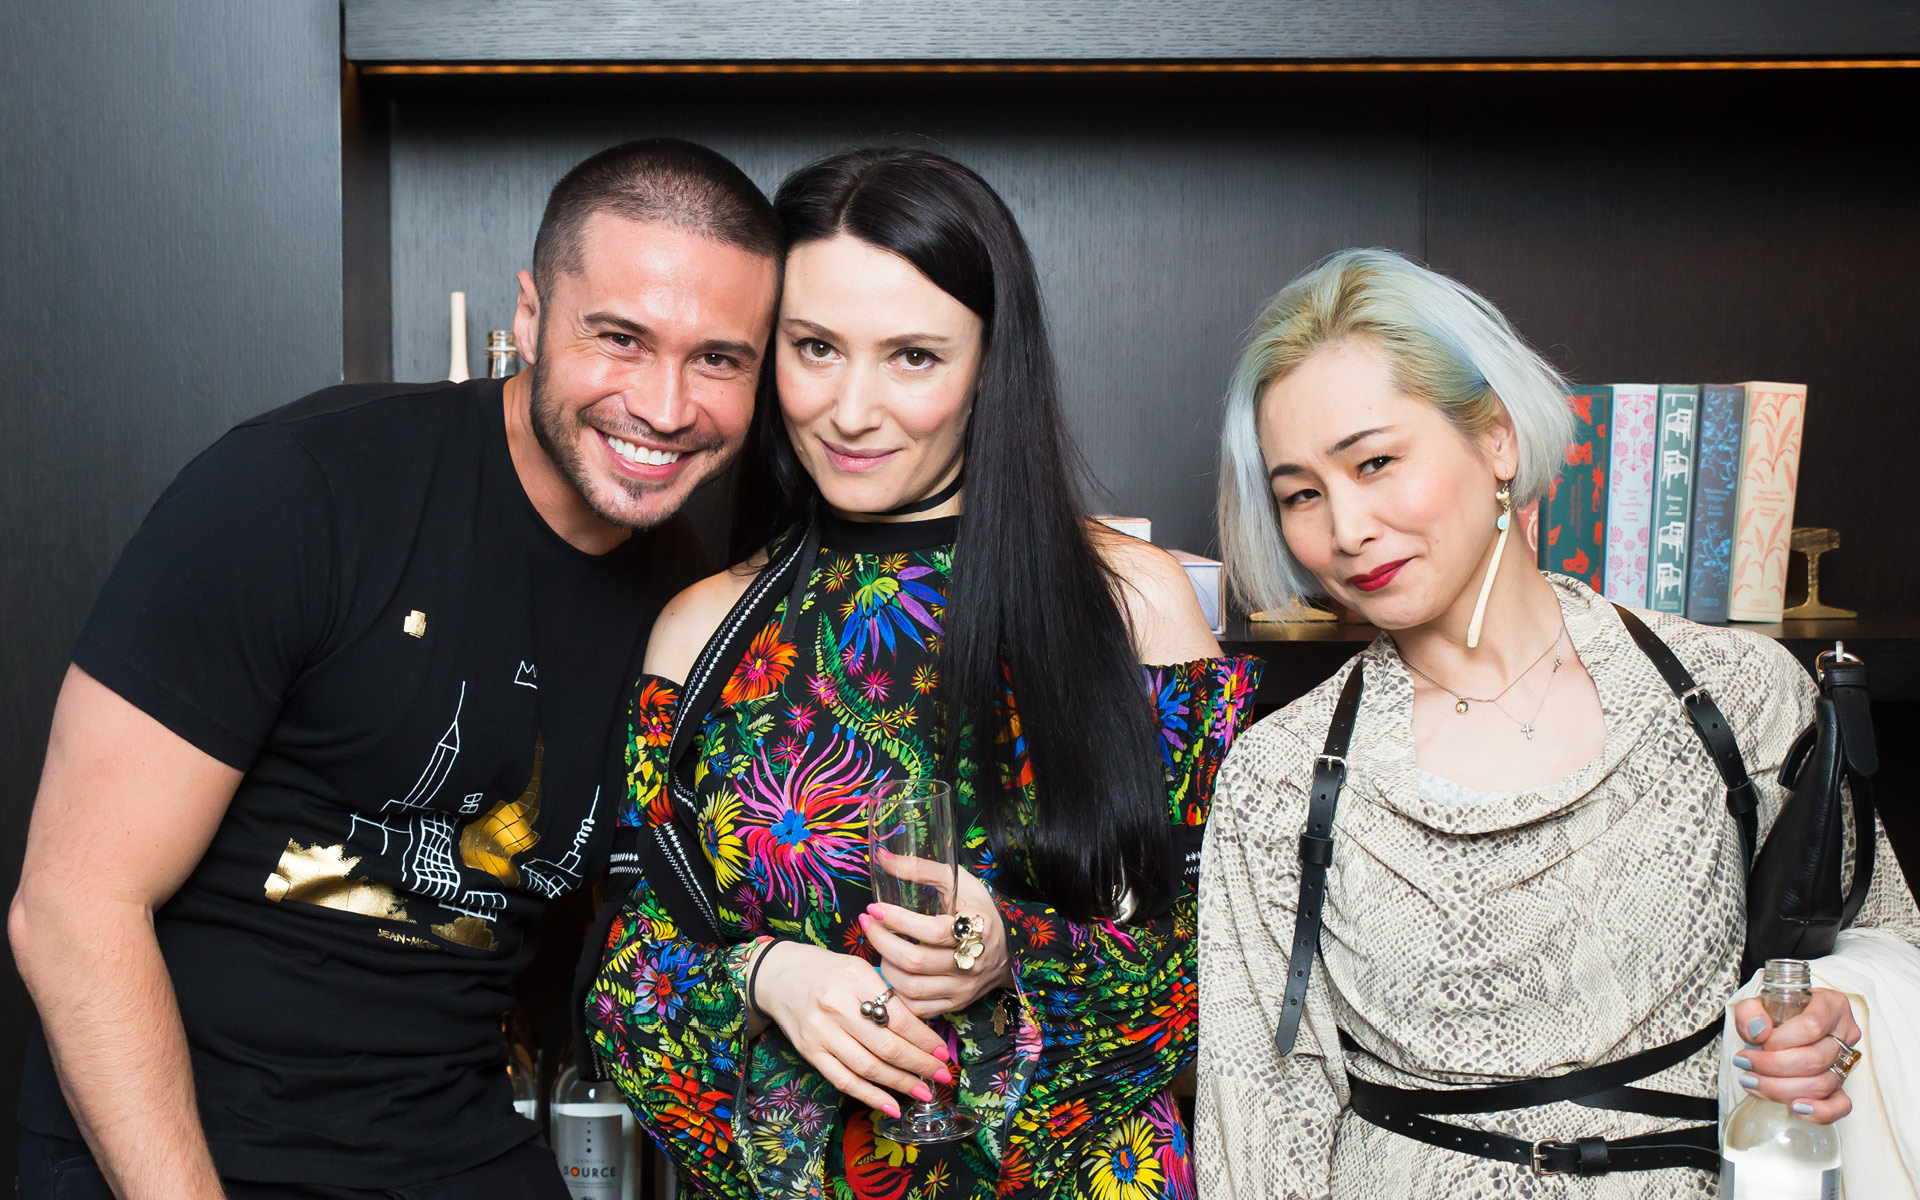 Edward Cruz, Yelena Deyneko and Yachi Gault, at Edition Hotel, celebrating Maxwell birthday and Spirit & Flesh magazine cover story by Mark Seliger